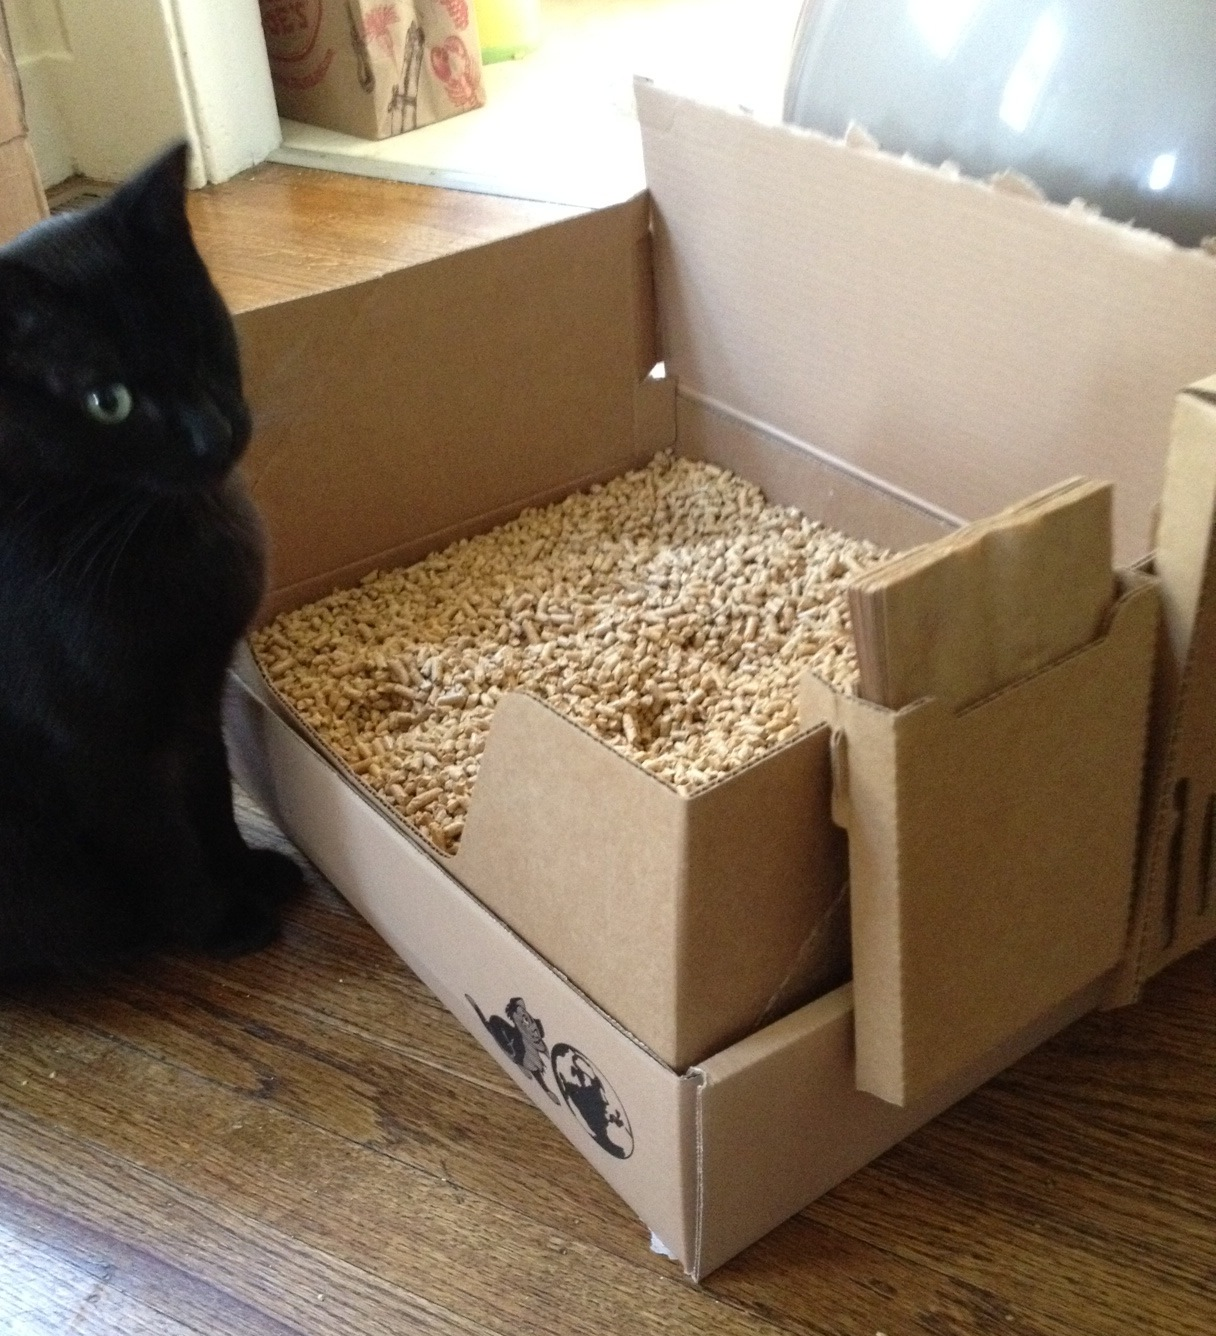 Natural Cat Litter The Quest For The Perfect One